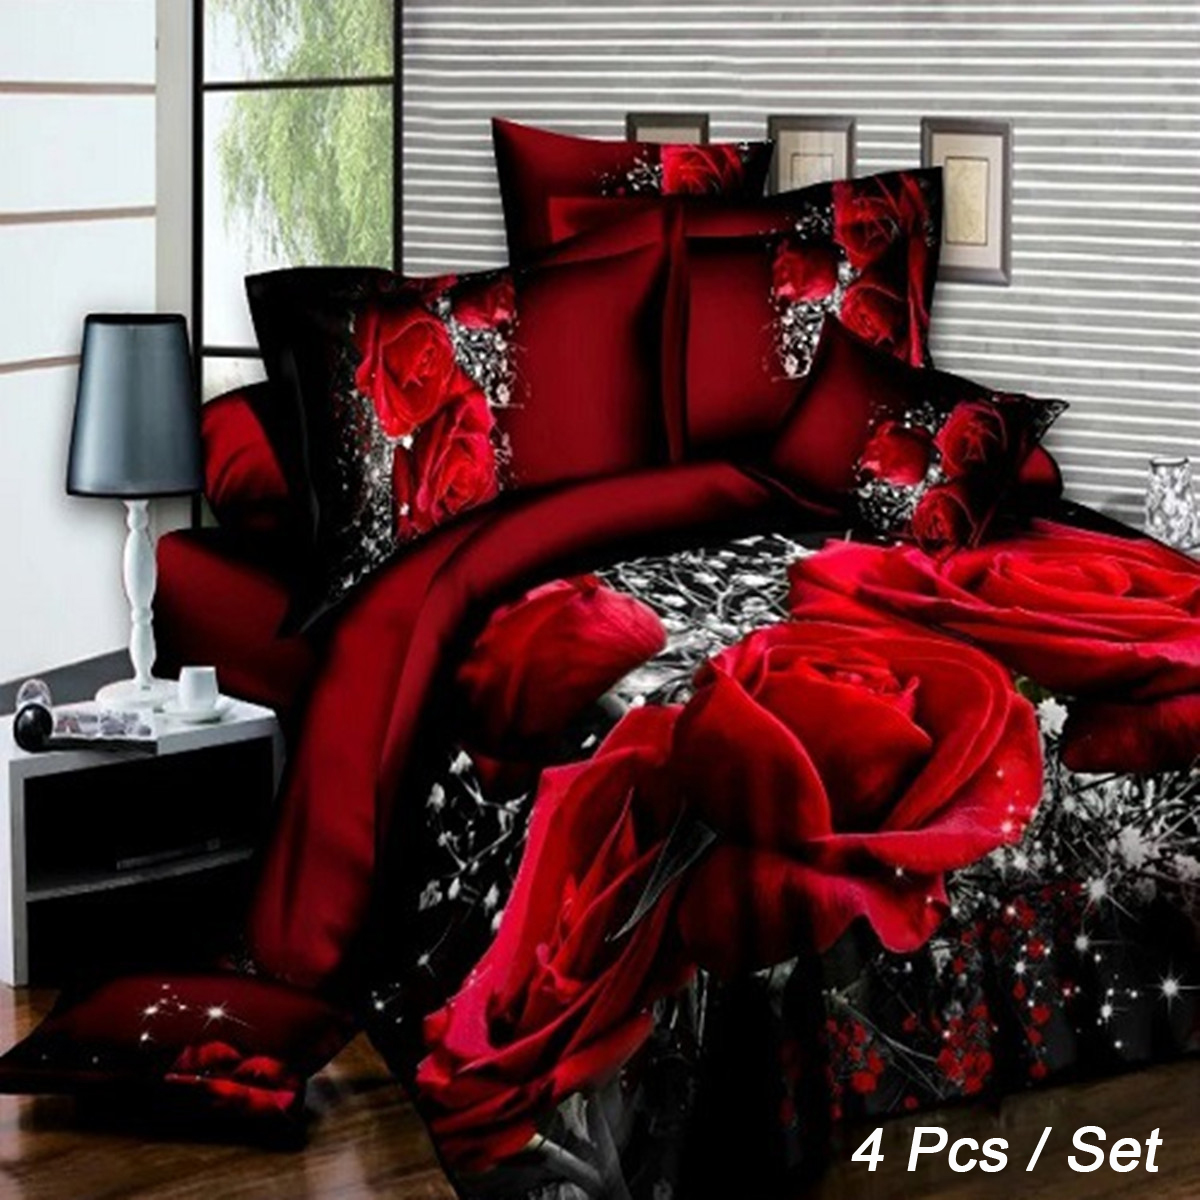 4 Pcs 3D Images Bedding Sets Duvet Set 1 Quilt Cover 1 Fitted Sheet 2 Pillow Cases